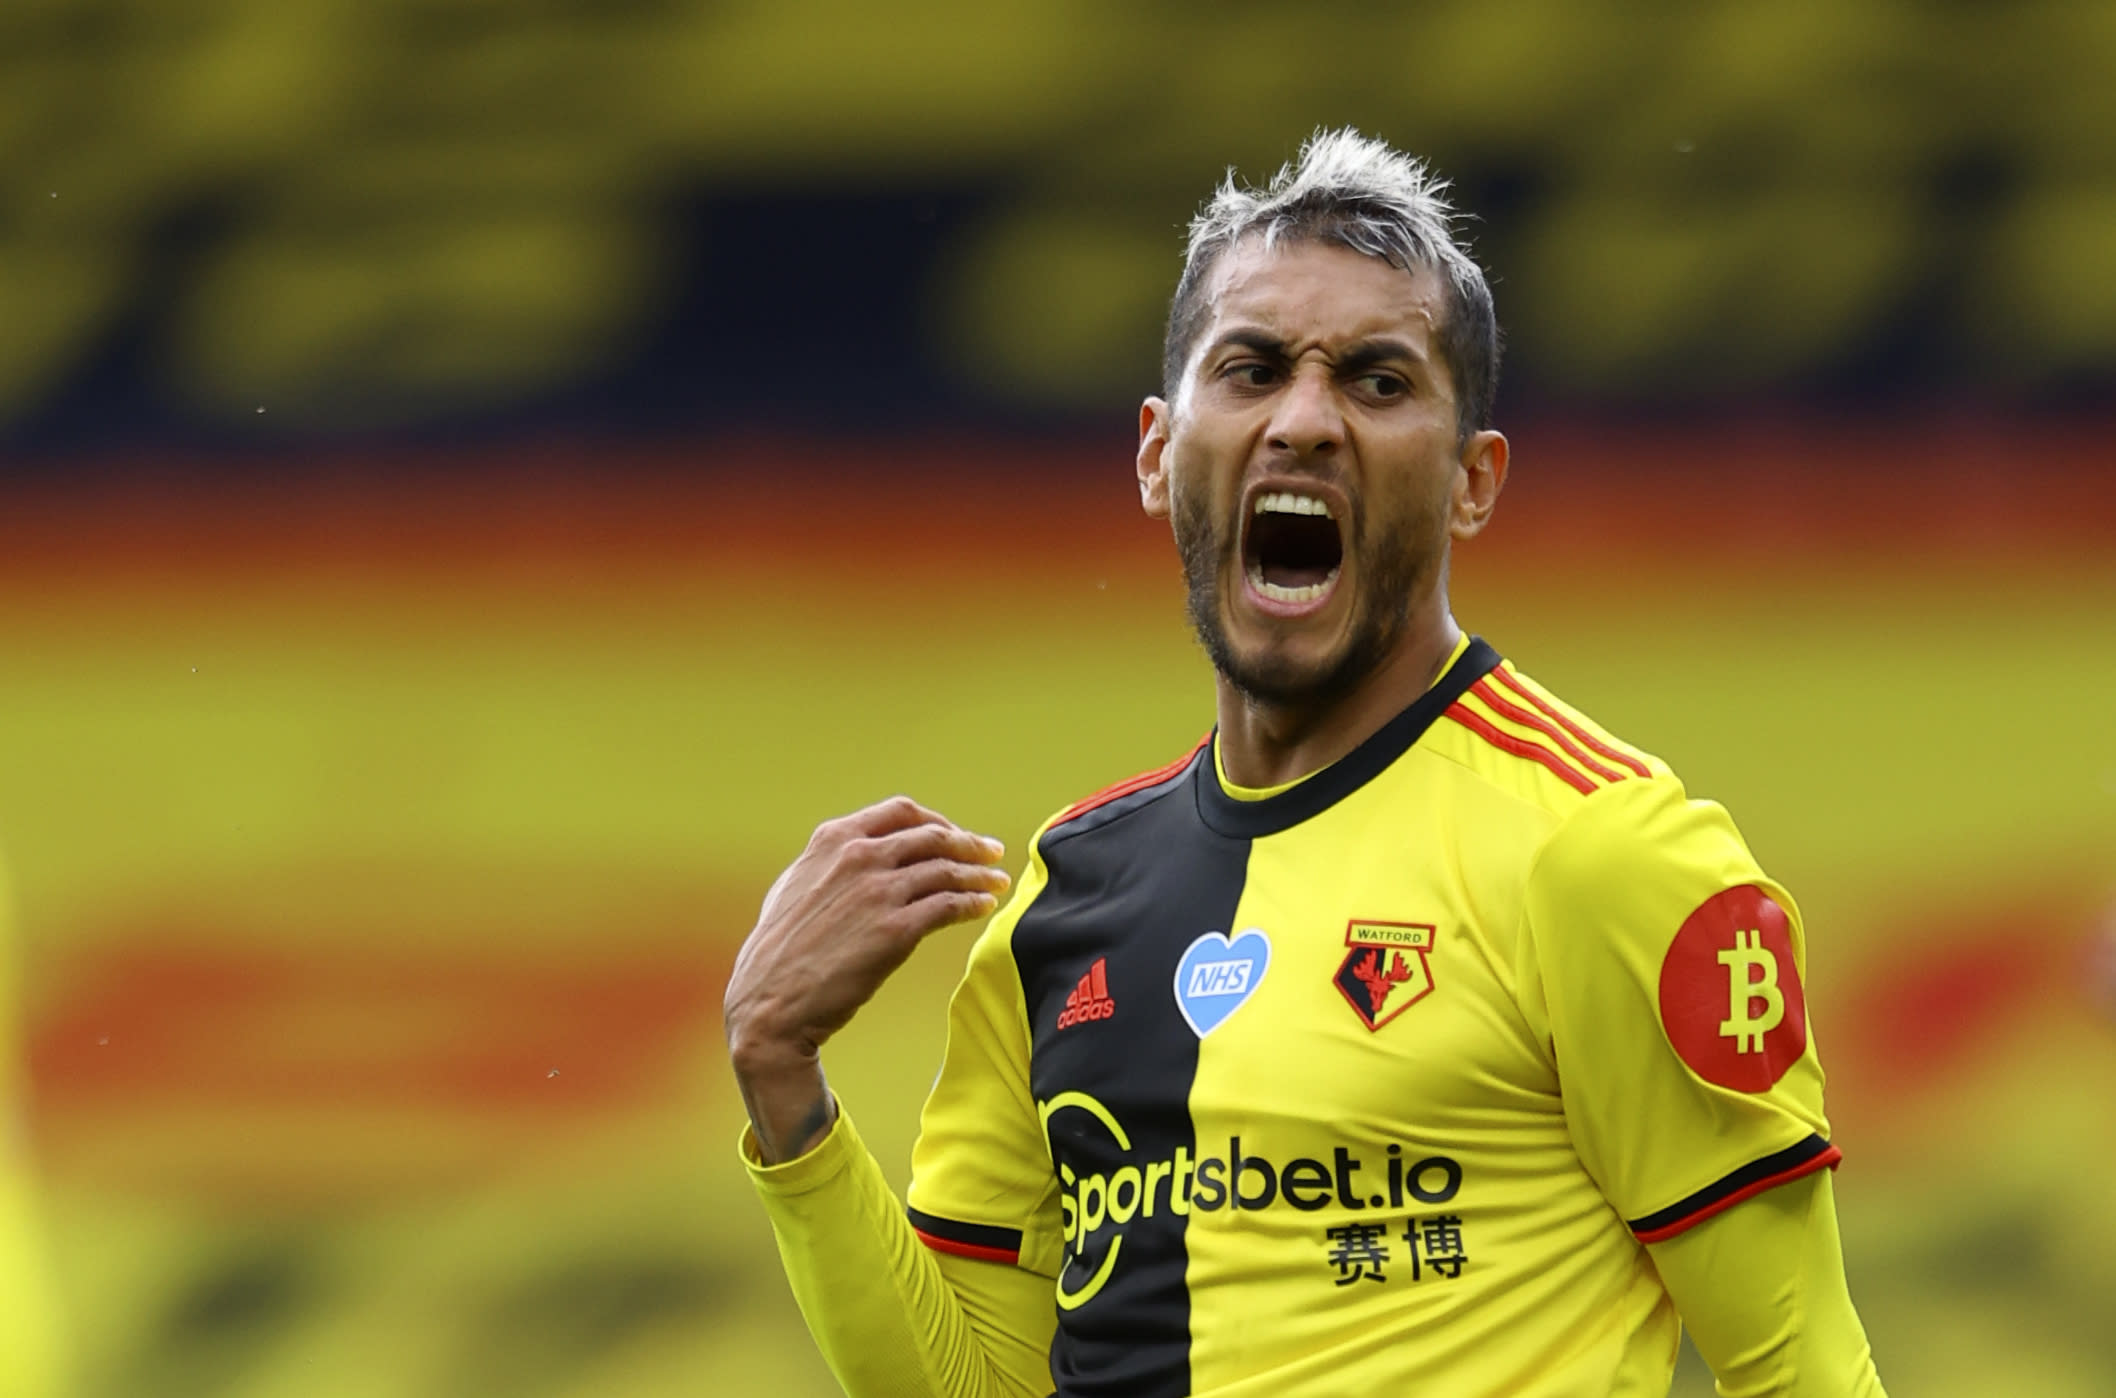 Watford's Roberto Pereyra reacts during the English Premier League soccer match between Watford and Manchester City at the Vicarage Road Stadium in Watford, England, Tuesday, July 21, 2020. (Richard Heathcote/Pool via AP)